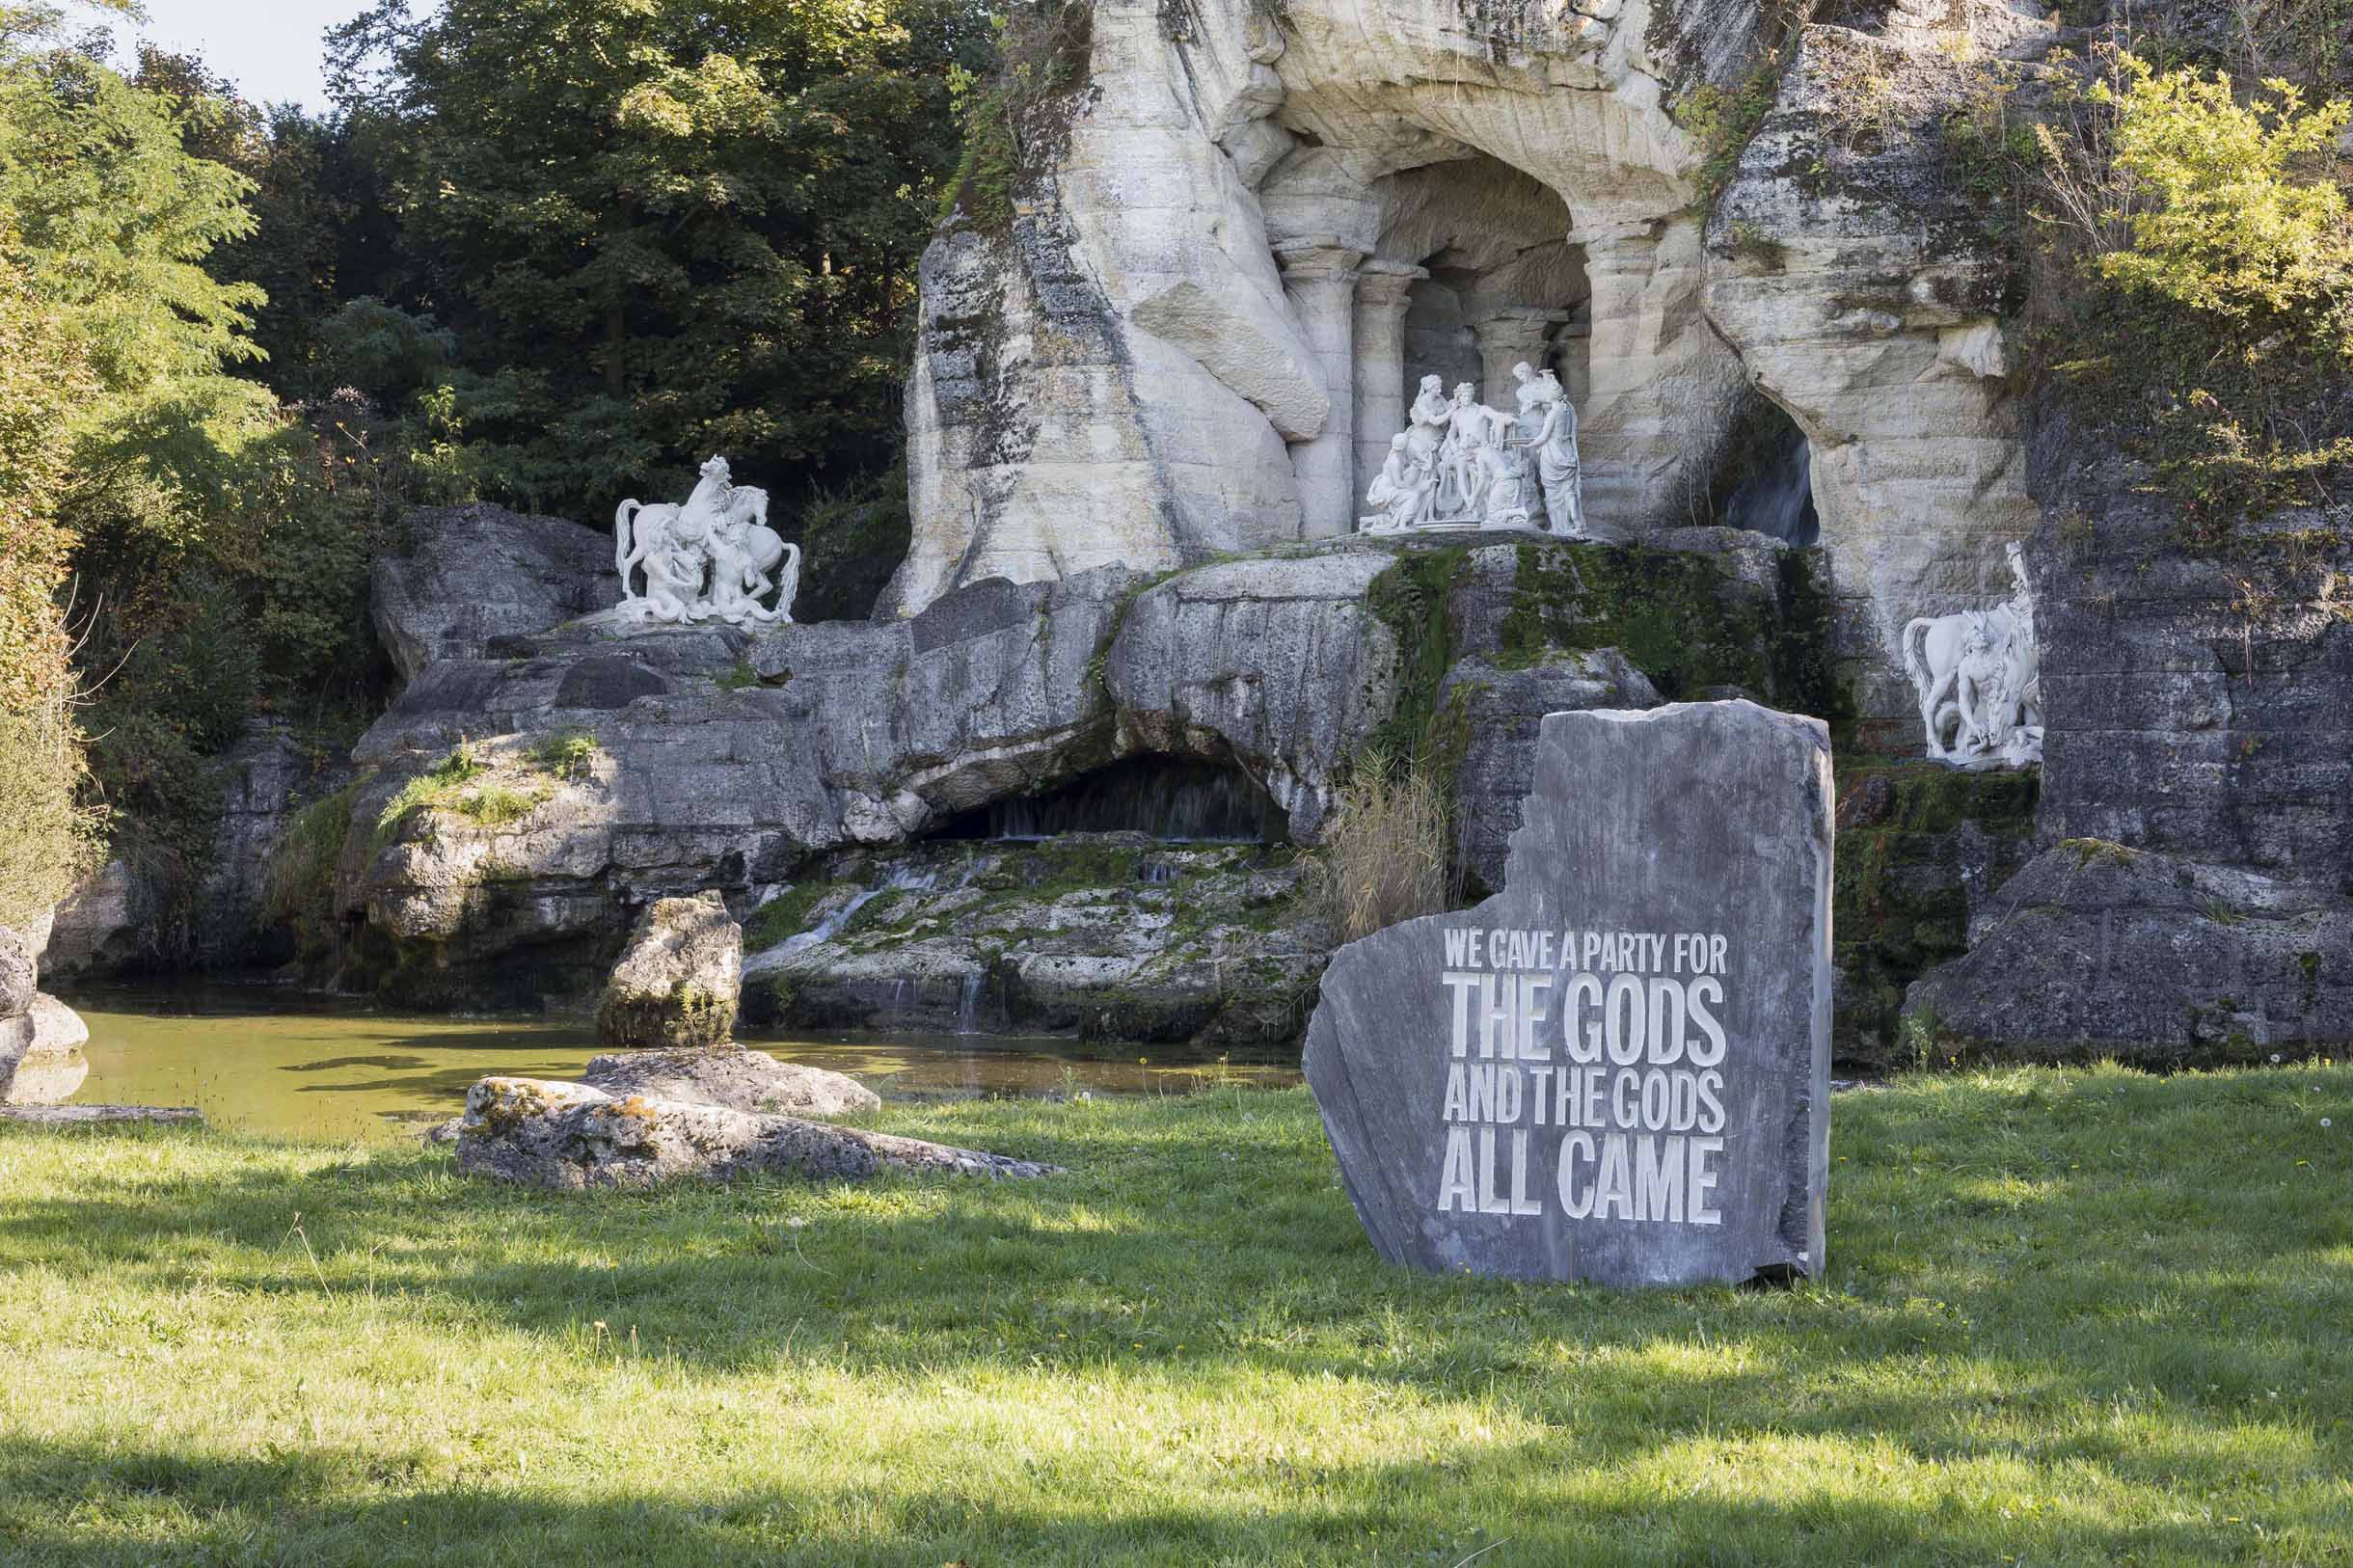 John Giorno, We gave a party for the gods and the gods all came, 2017 Roches calcaires gravées Courtesy de l'artiste